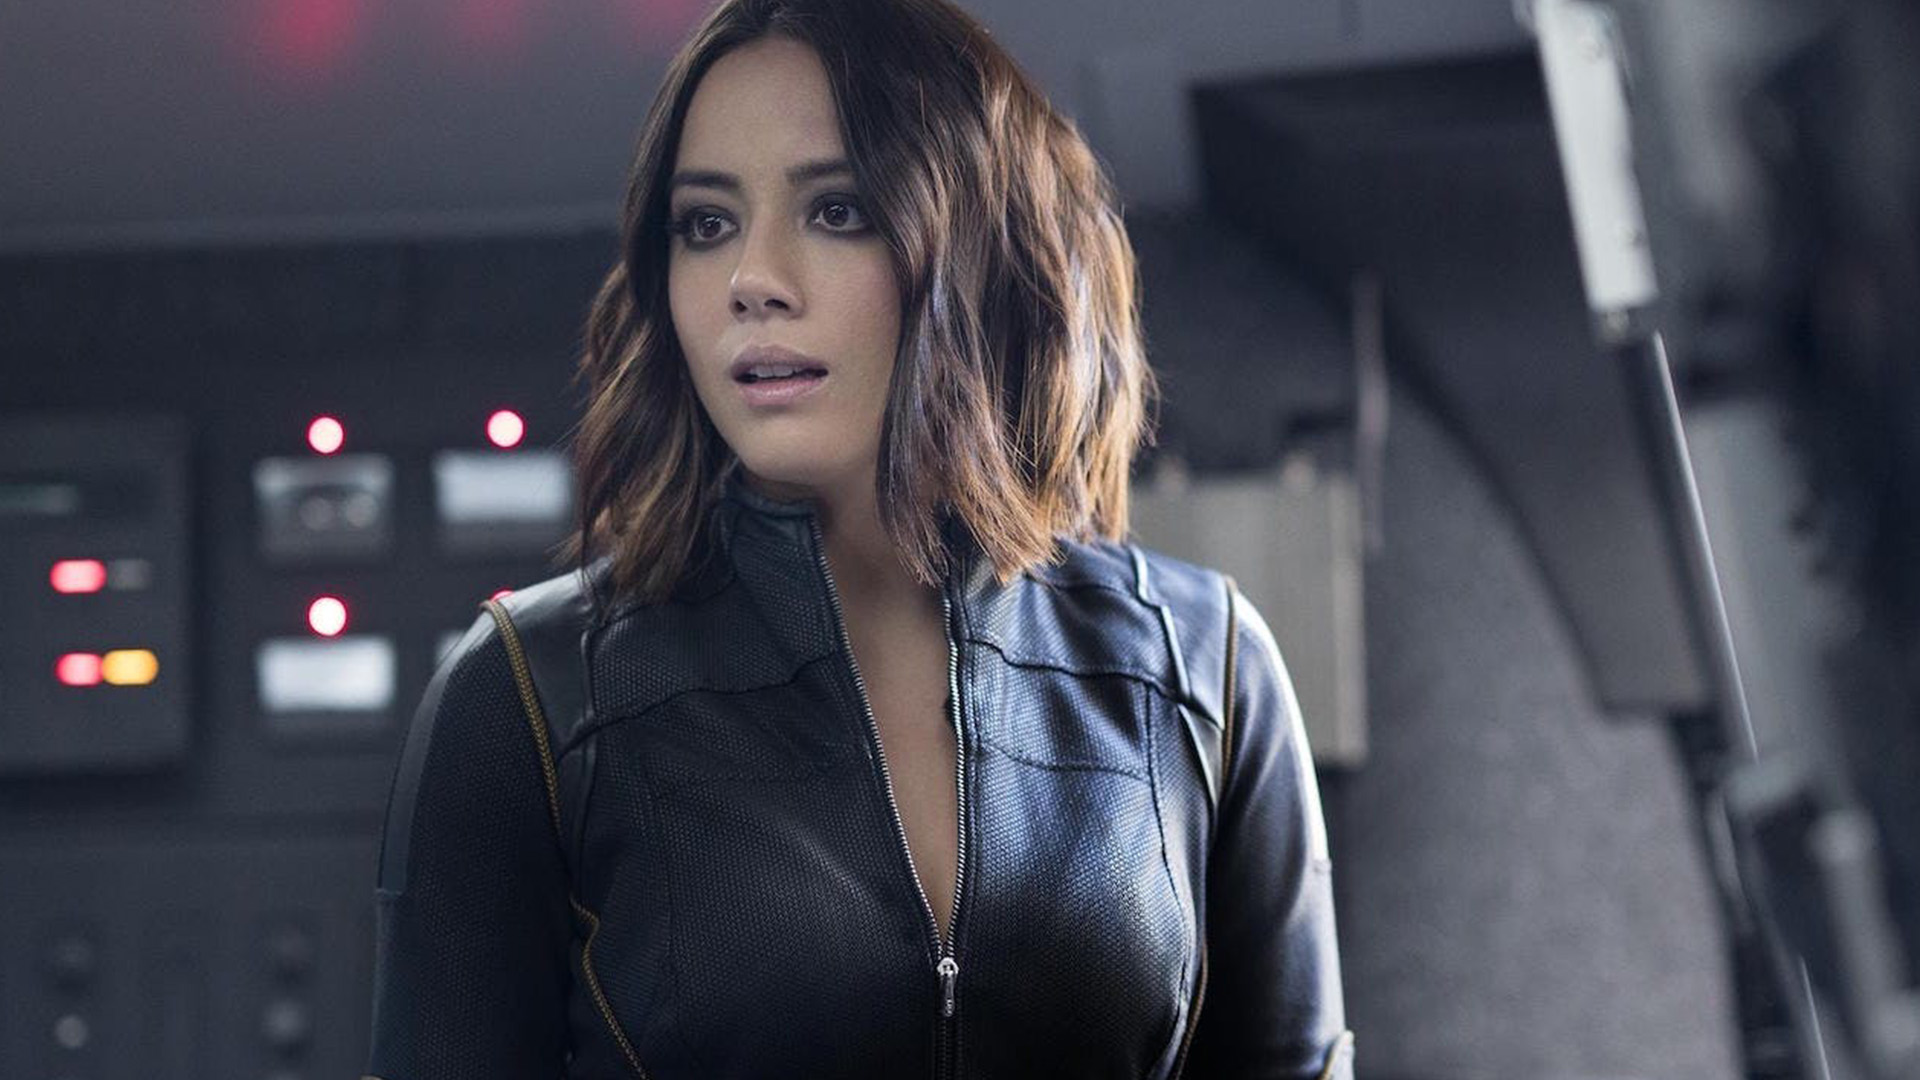 Agents of Shield Season 6 Episode 12 watch online